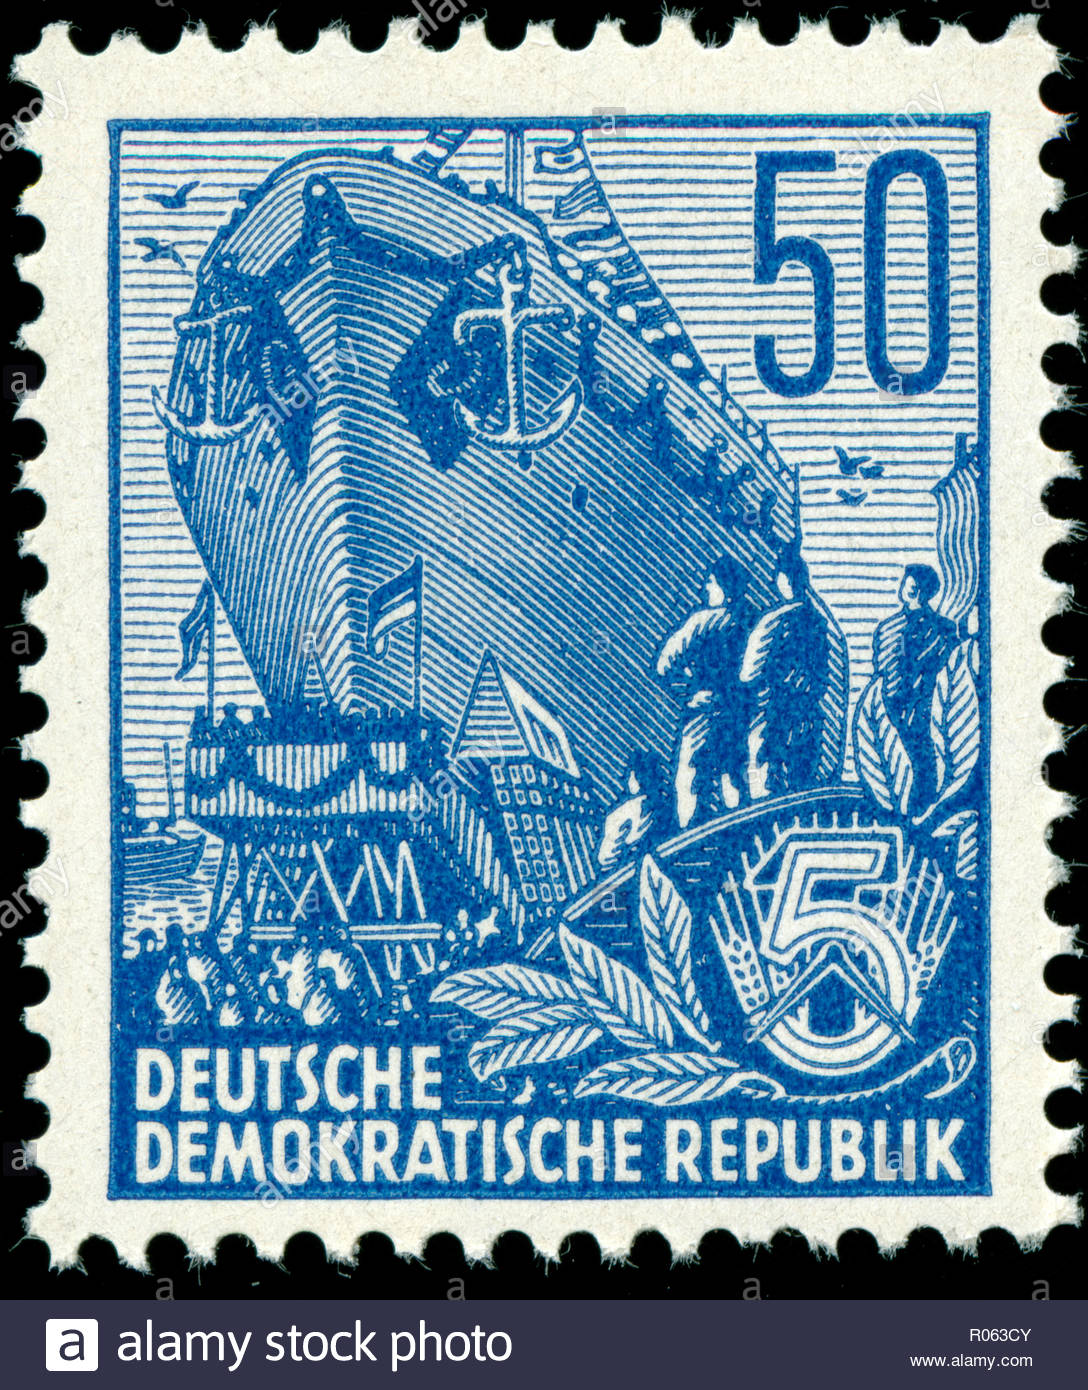 Old stamp from the East Germany in the Five-year Plan series - Stock Image